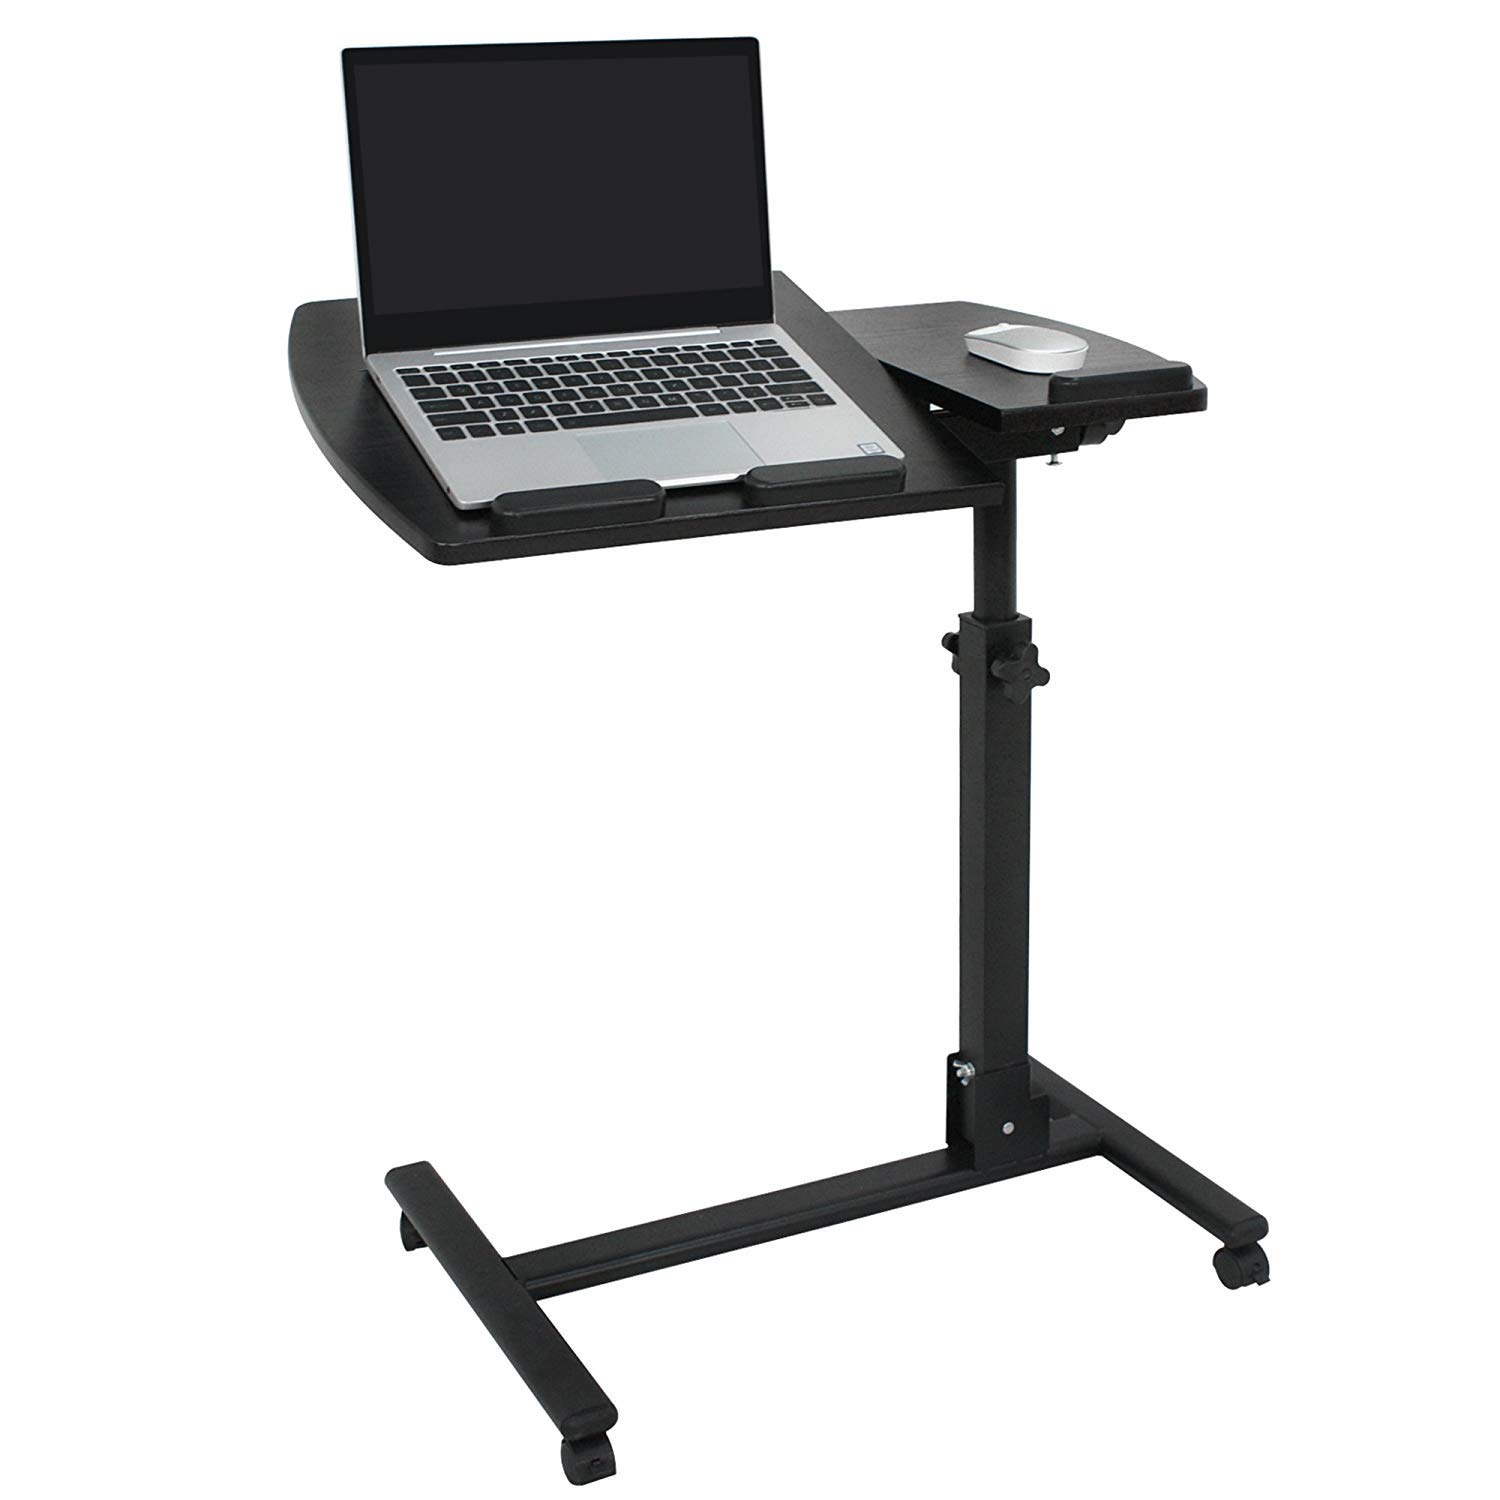 F2C Portable Adjustable Height 360° Swivel Laptop Desk PC Computer Mobile Notebook Laptop Stand Rolling Table Desk Cart Tiltable with Wheels Casters& Mouse Pad Table